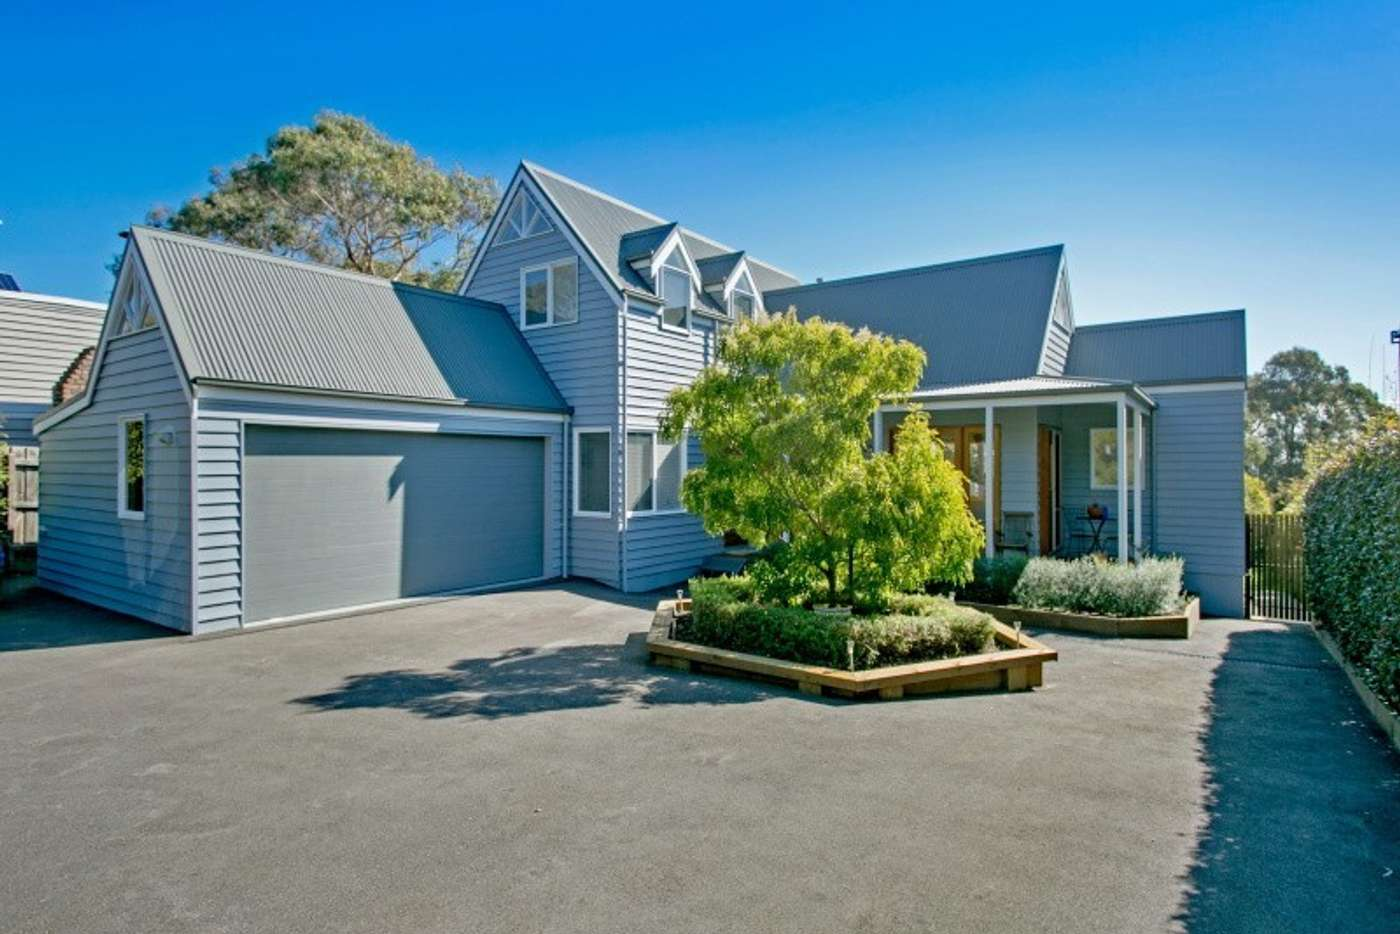 Main view of Homely house listing, 17 Hooper Grove, Mount Martha VIC 3934